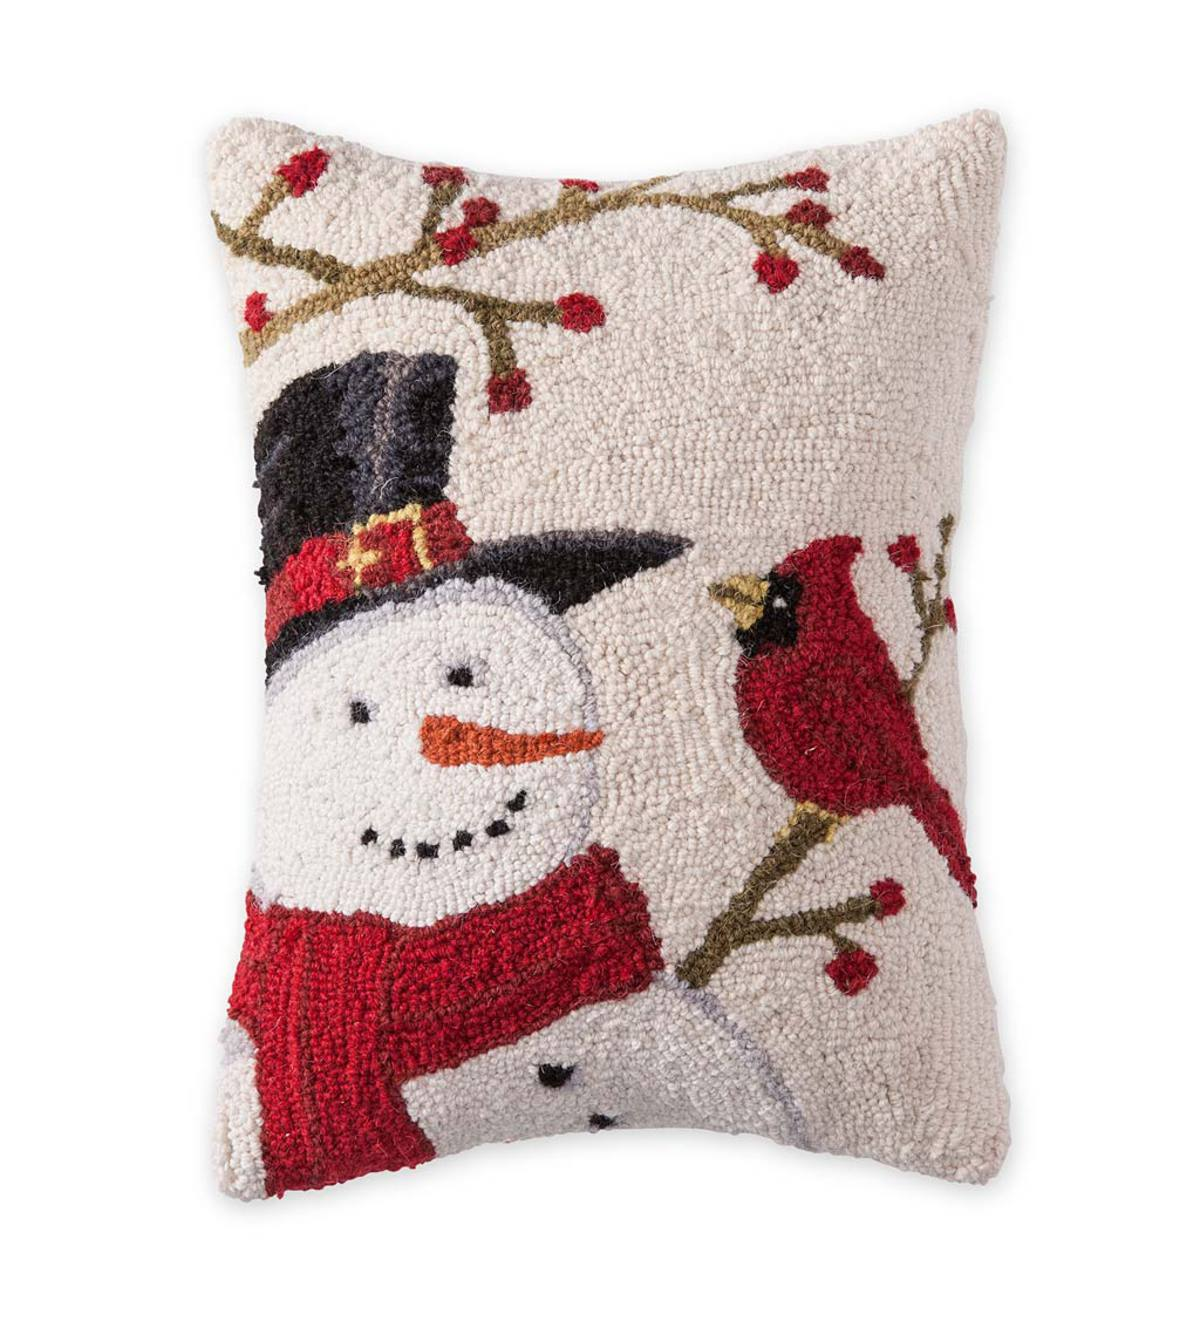 Snowman And Cardinal Hooked Wool Pillow Plowhearth